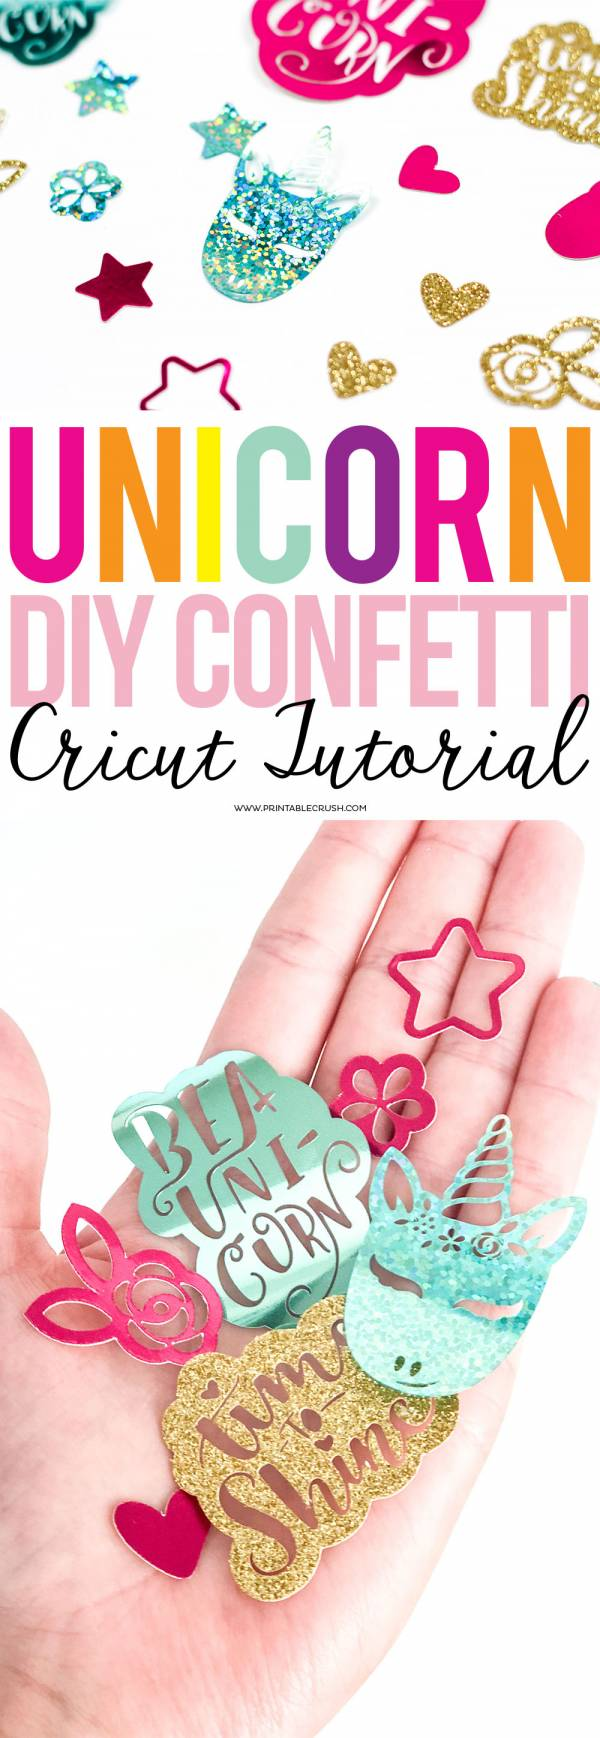 Unicorn DIY Confetti Cricut Tutorial